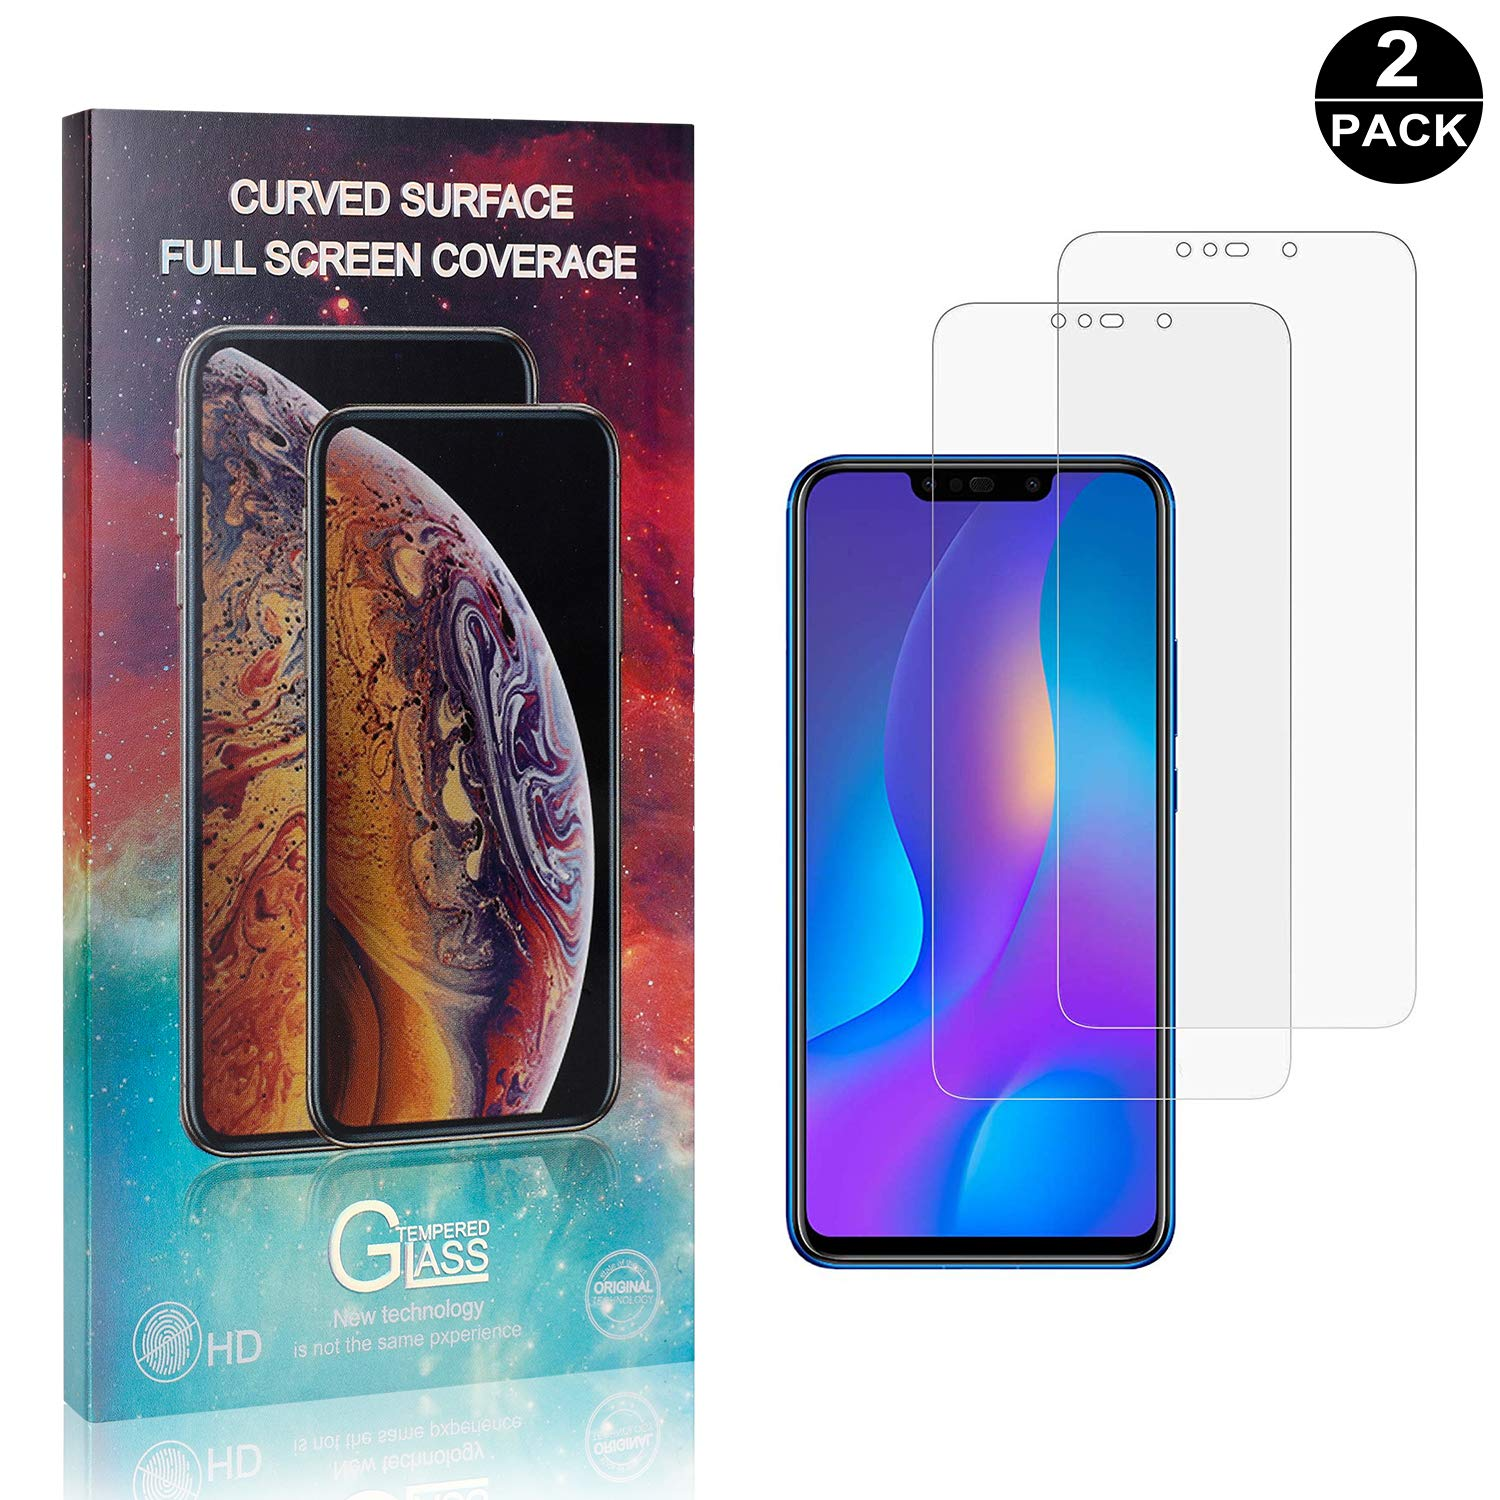 9H Tempered Glass Screen Protector Anti-Shatter Film for Huawei P Smart Plus Tempered Glass Film 9h HD UNEXTATI 2 Pack Screen Protector for Huawei P Smart Plus